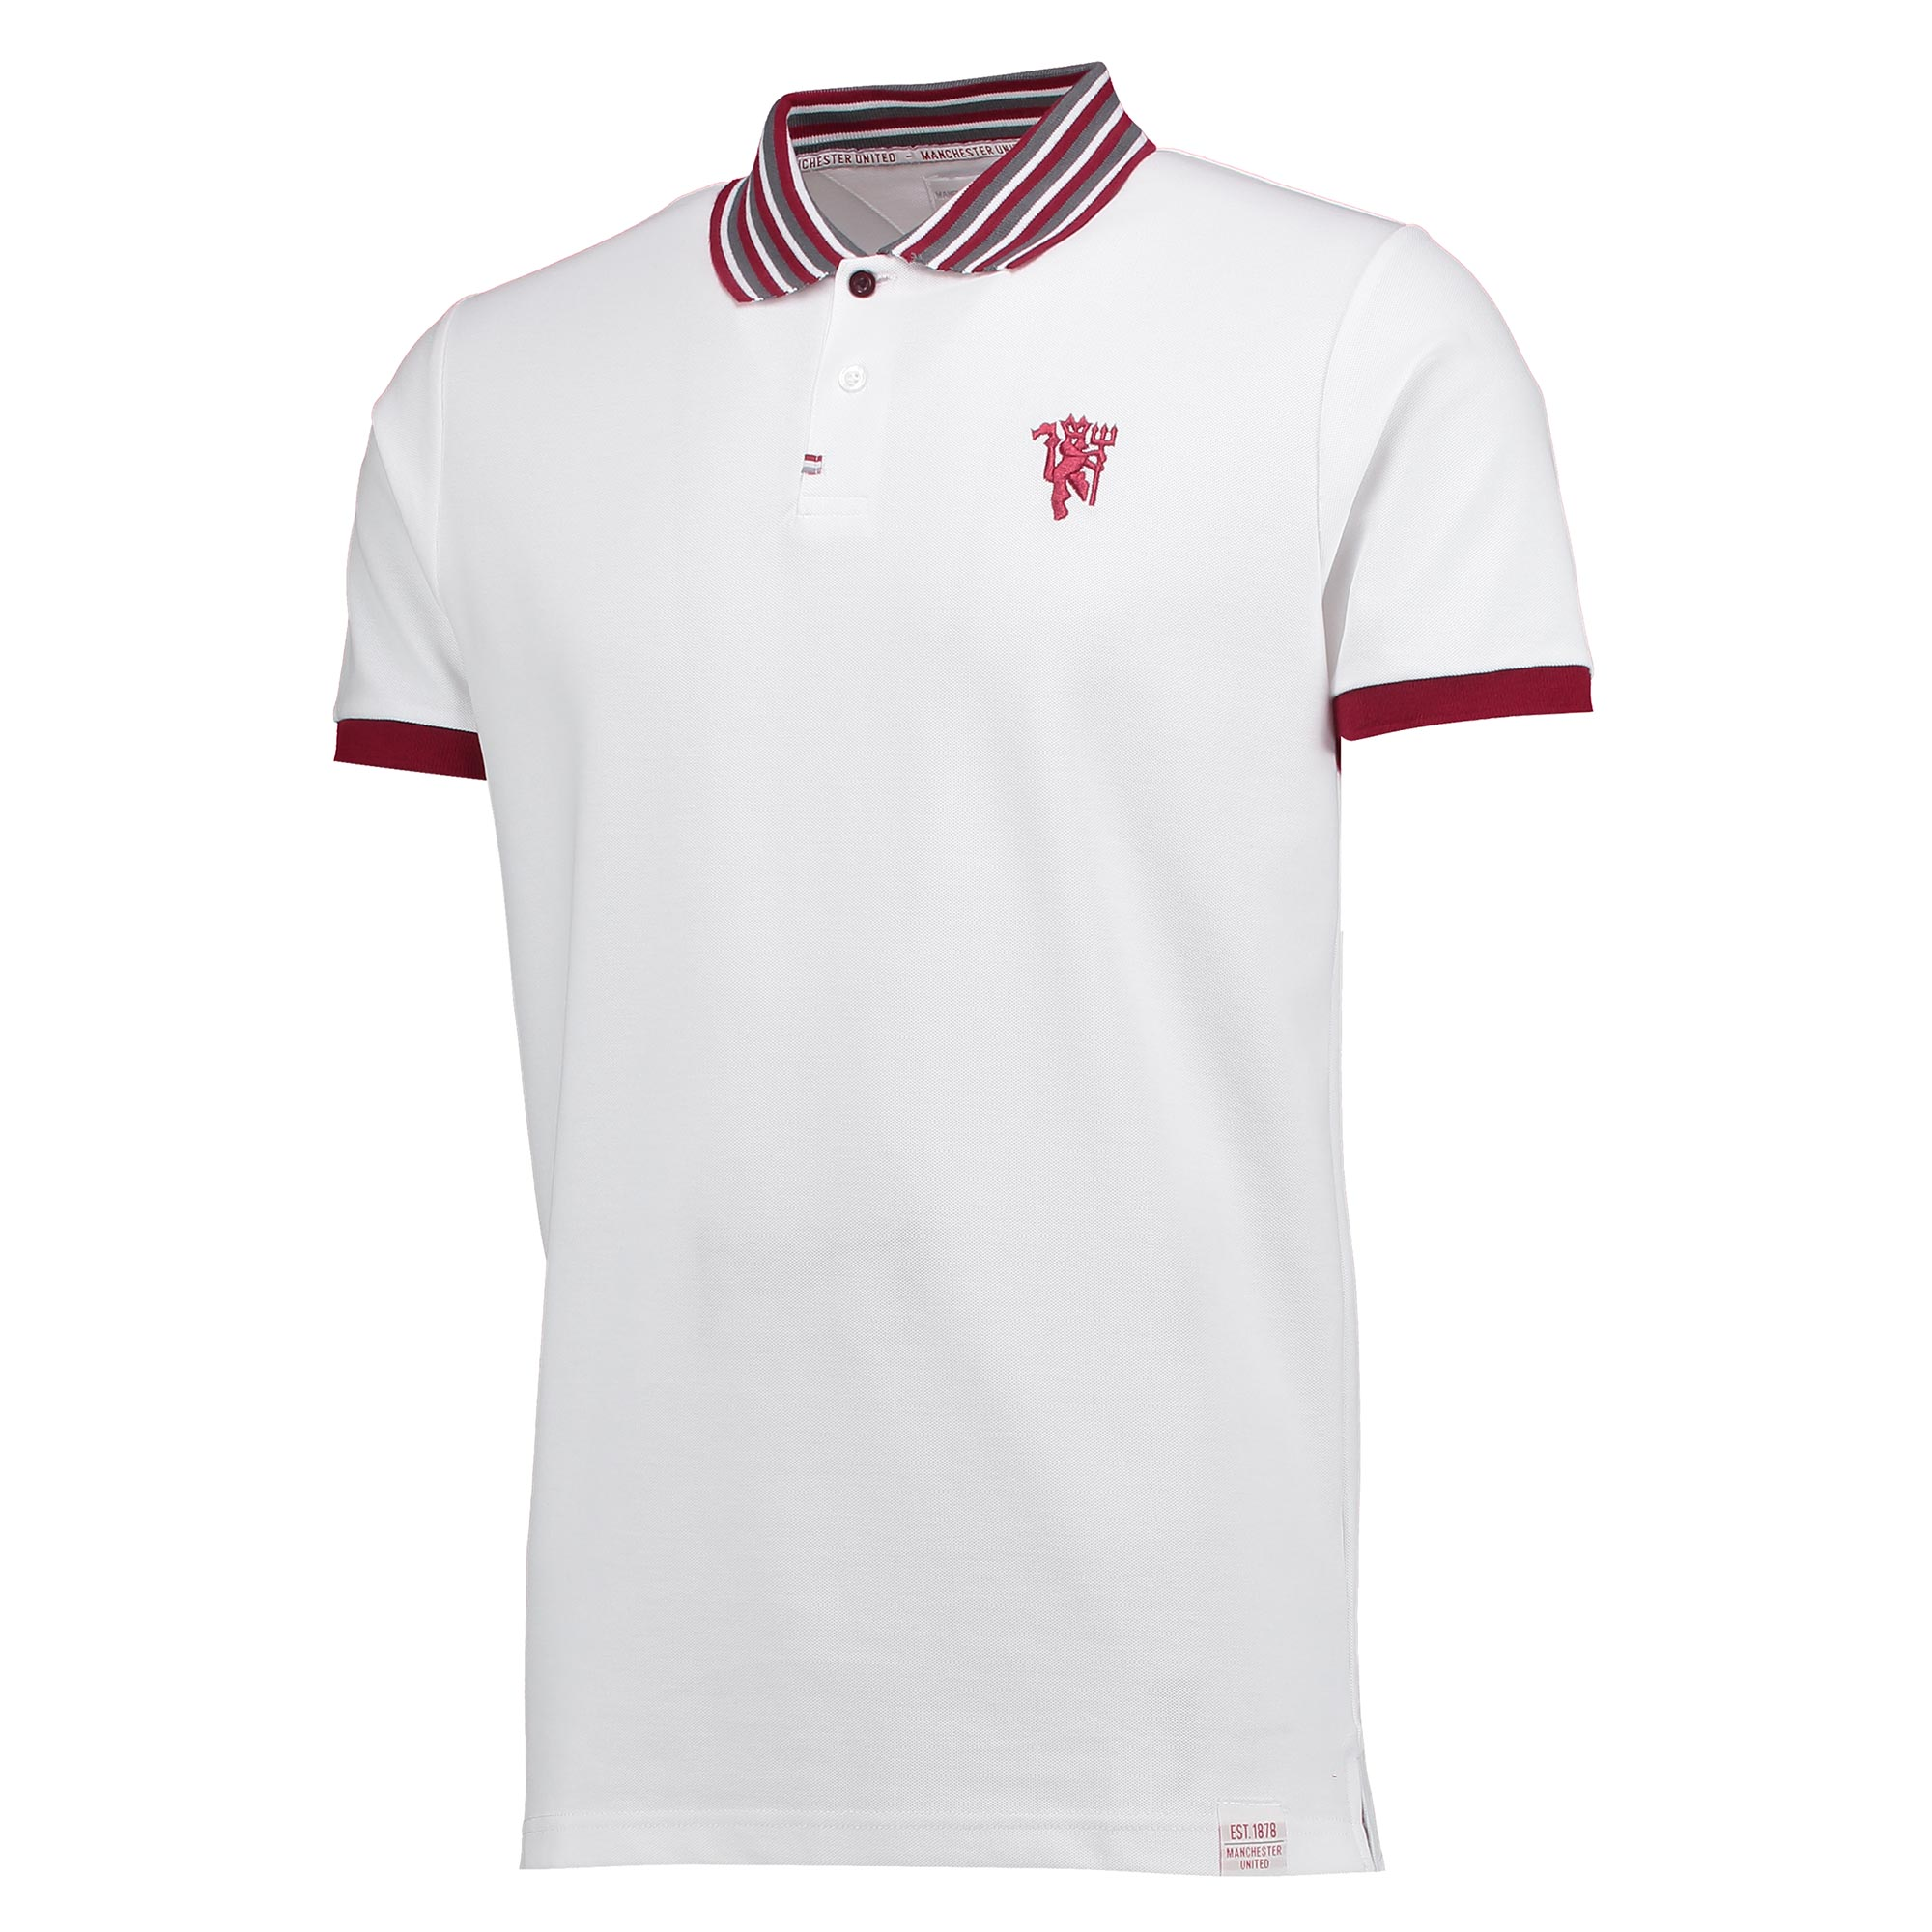 Manchester United Lifestyle Polo Shirt - White - Mens